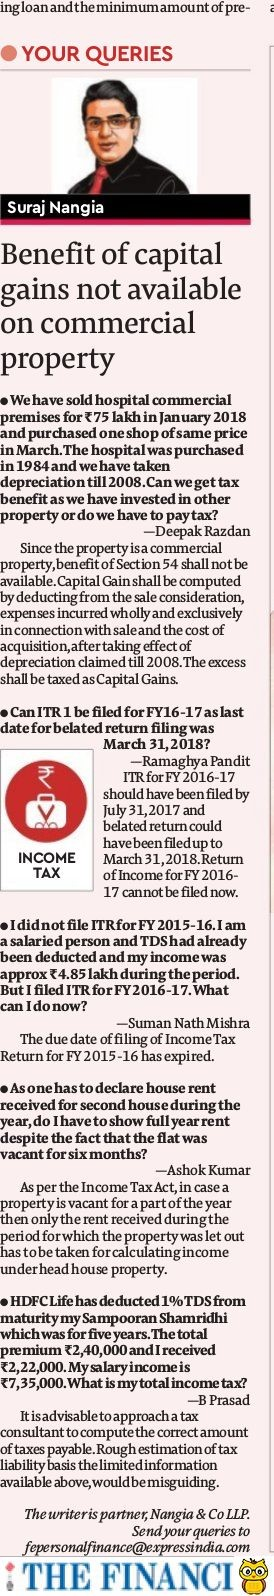 Income Tax: Benefit of capital gains not available on commercial property